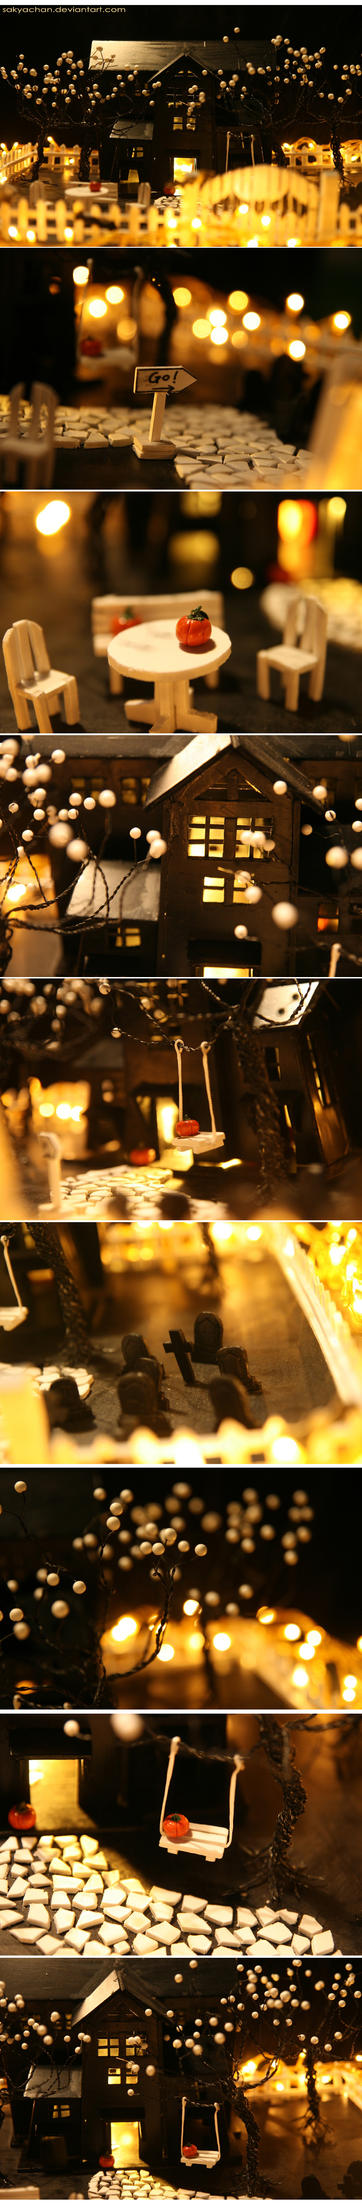 .:DECOR:. HALLOWEEN HOUSE NO 2 by sakyachan